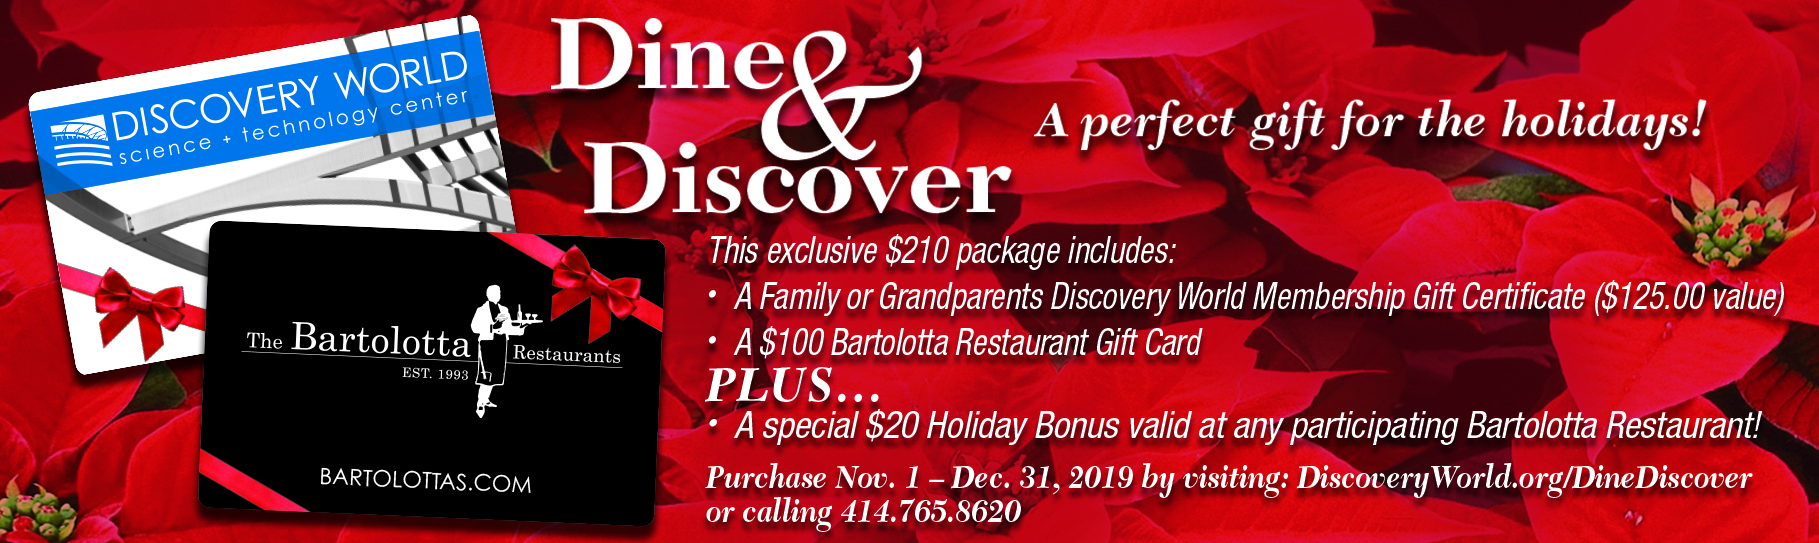 Dine & Discover with Discovery World and The Bartolotta Restaurants